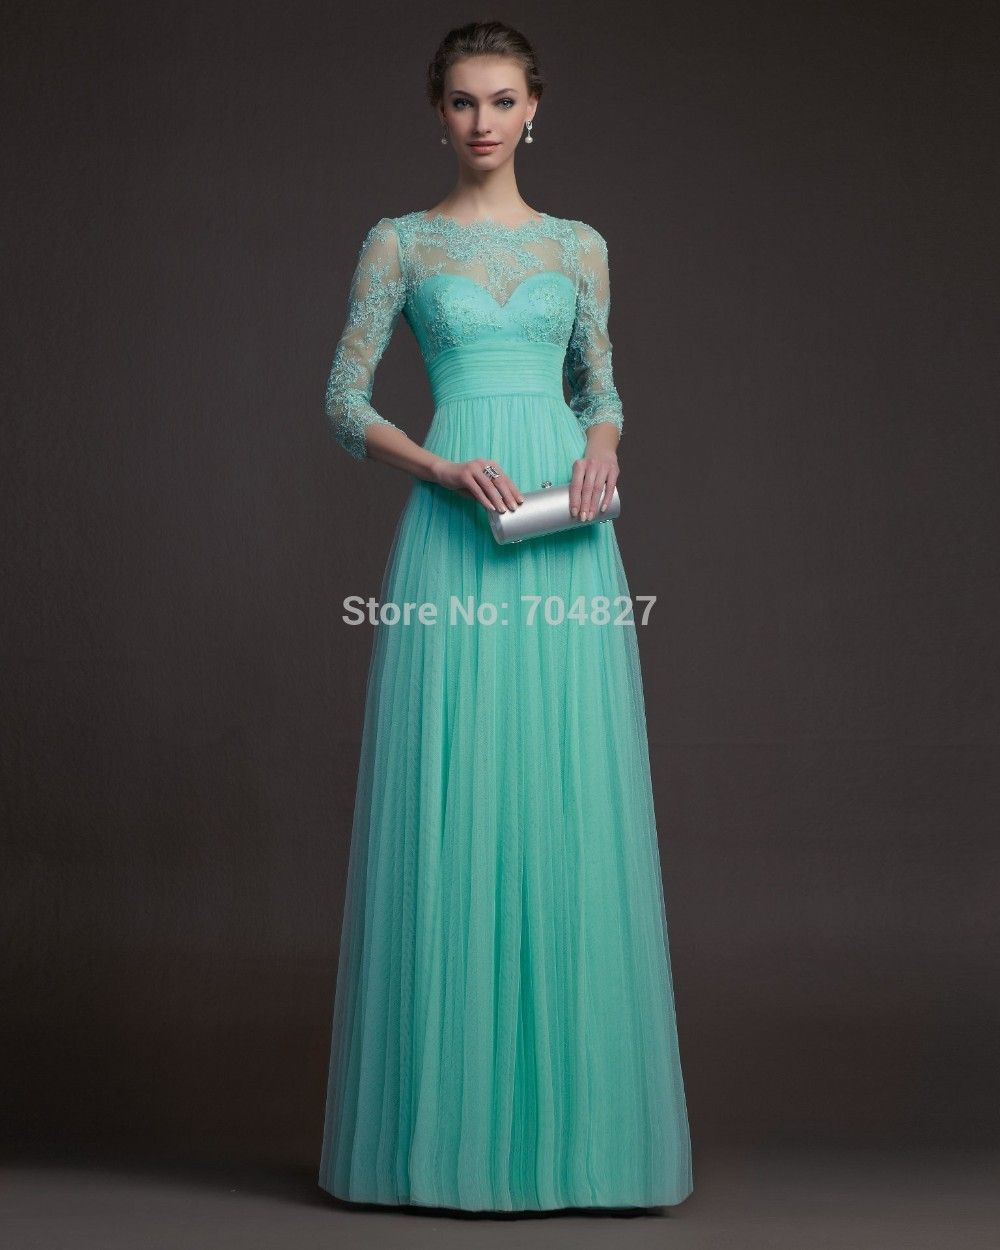 Modest Gowns Photo Album - Weddings by Denise